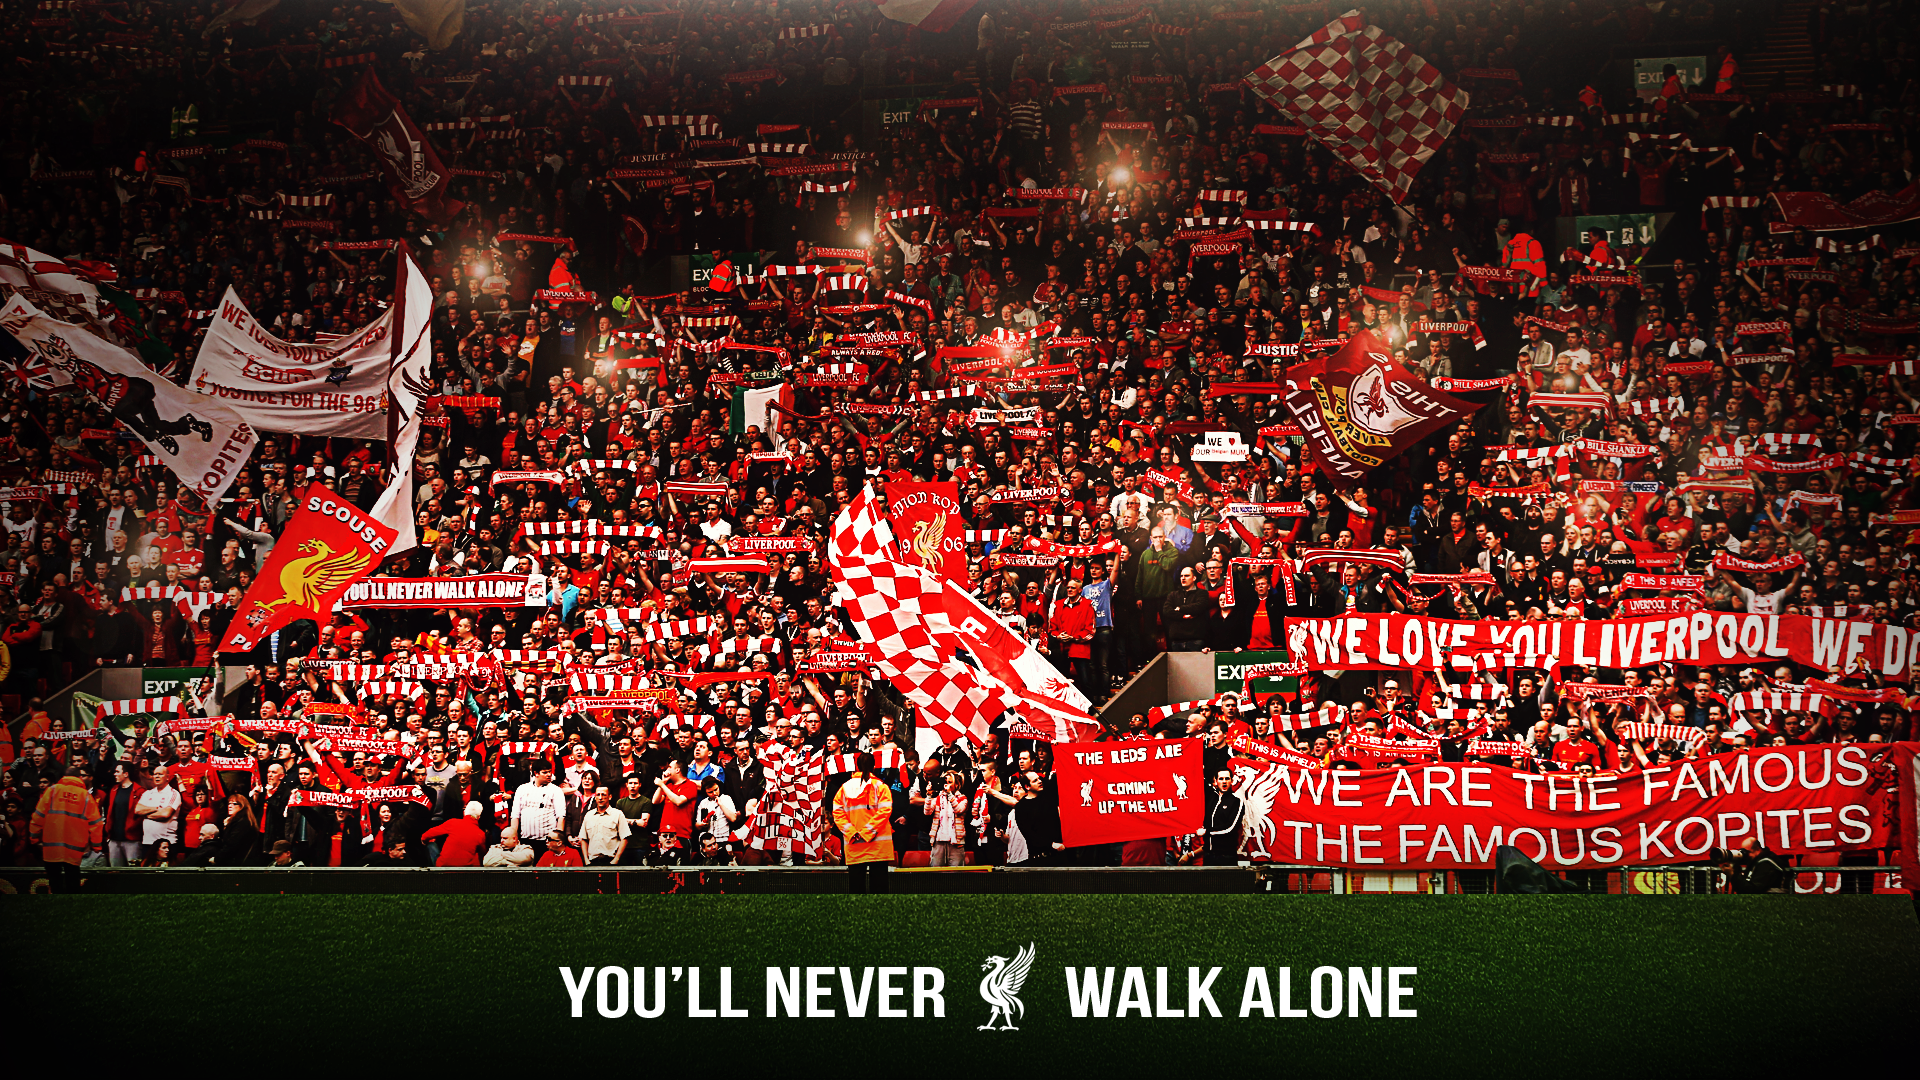 HD Liverpool Wallpapers 1920x1080